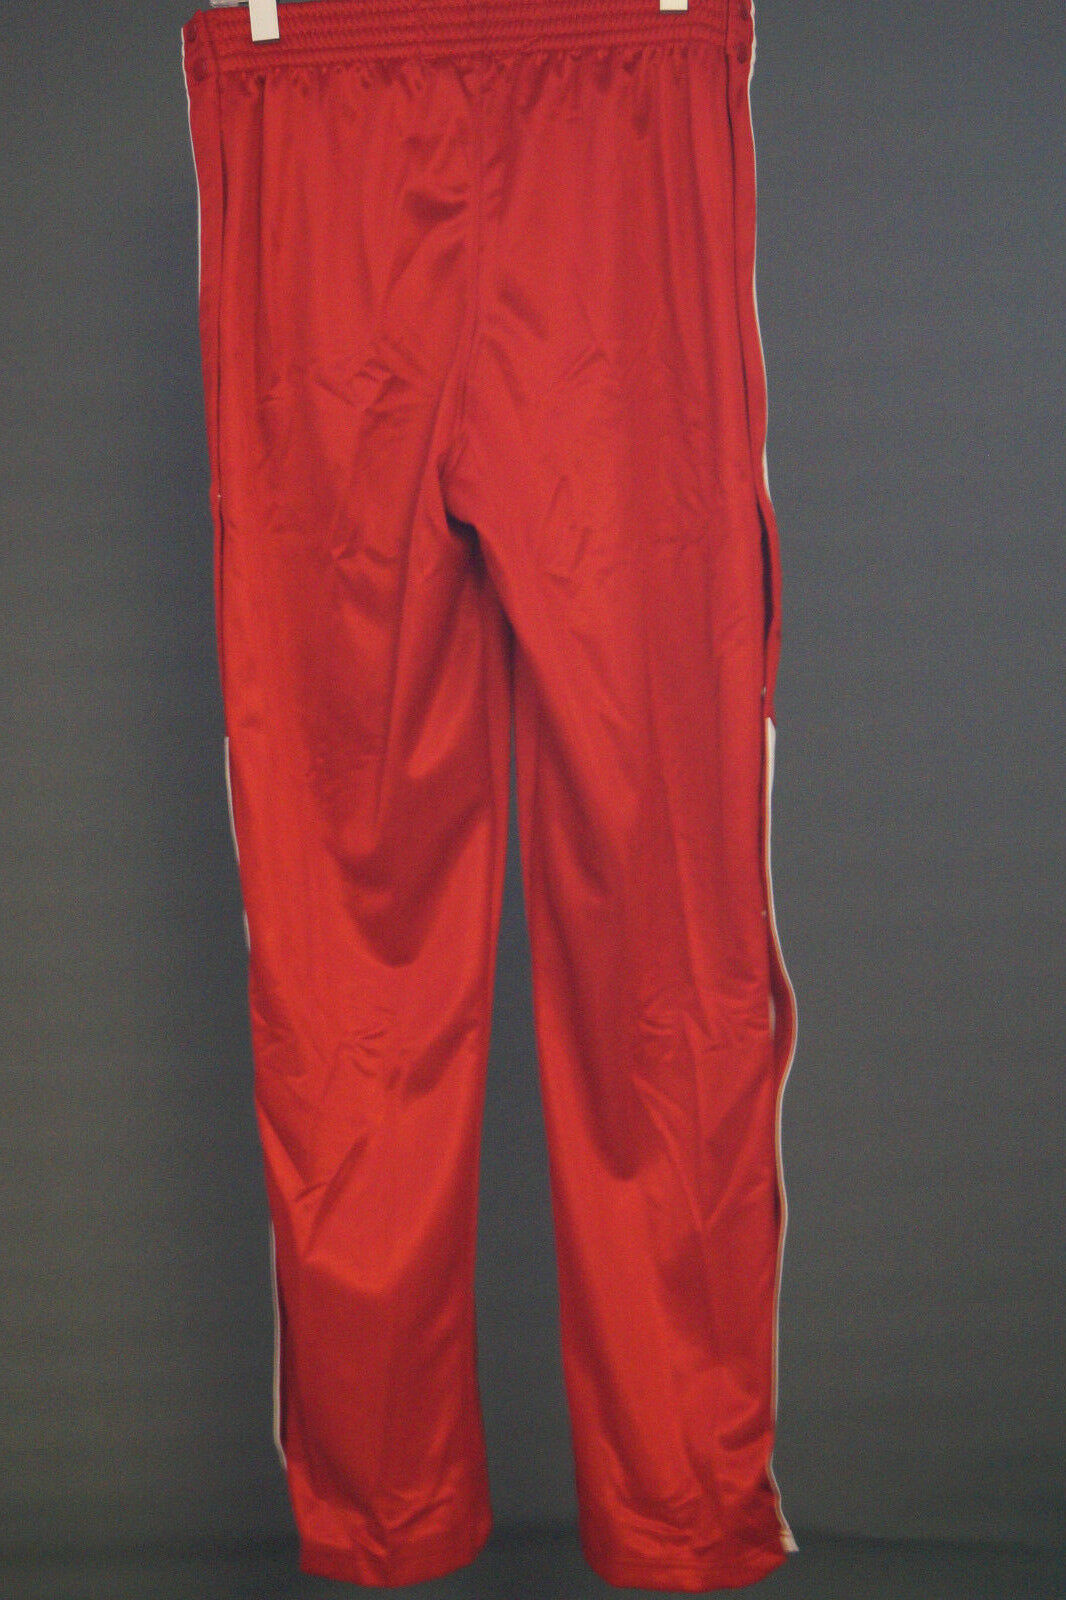 Adidas WARM-UP SNAP PA retro retro retro 90er style rot  AI4707 PANT Trainingshose 440f4e